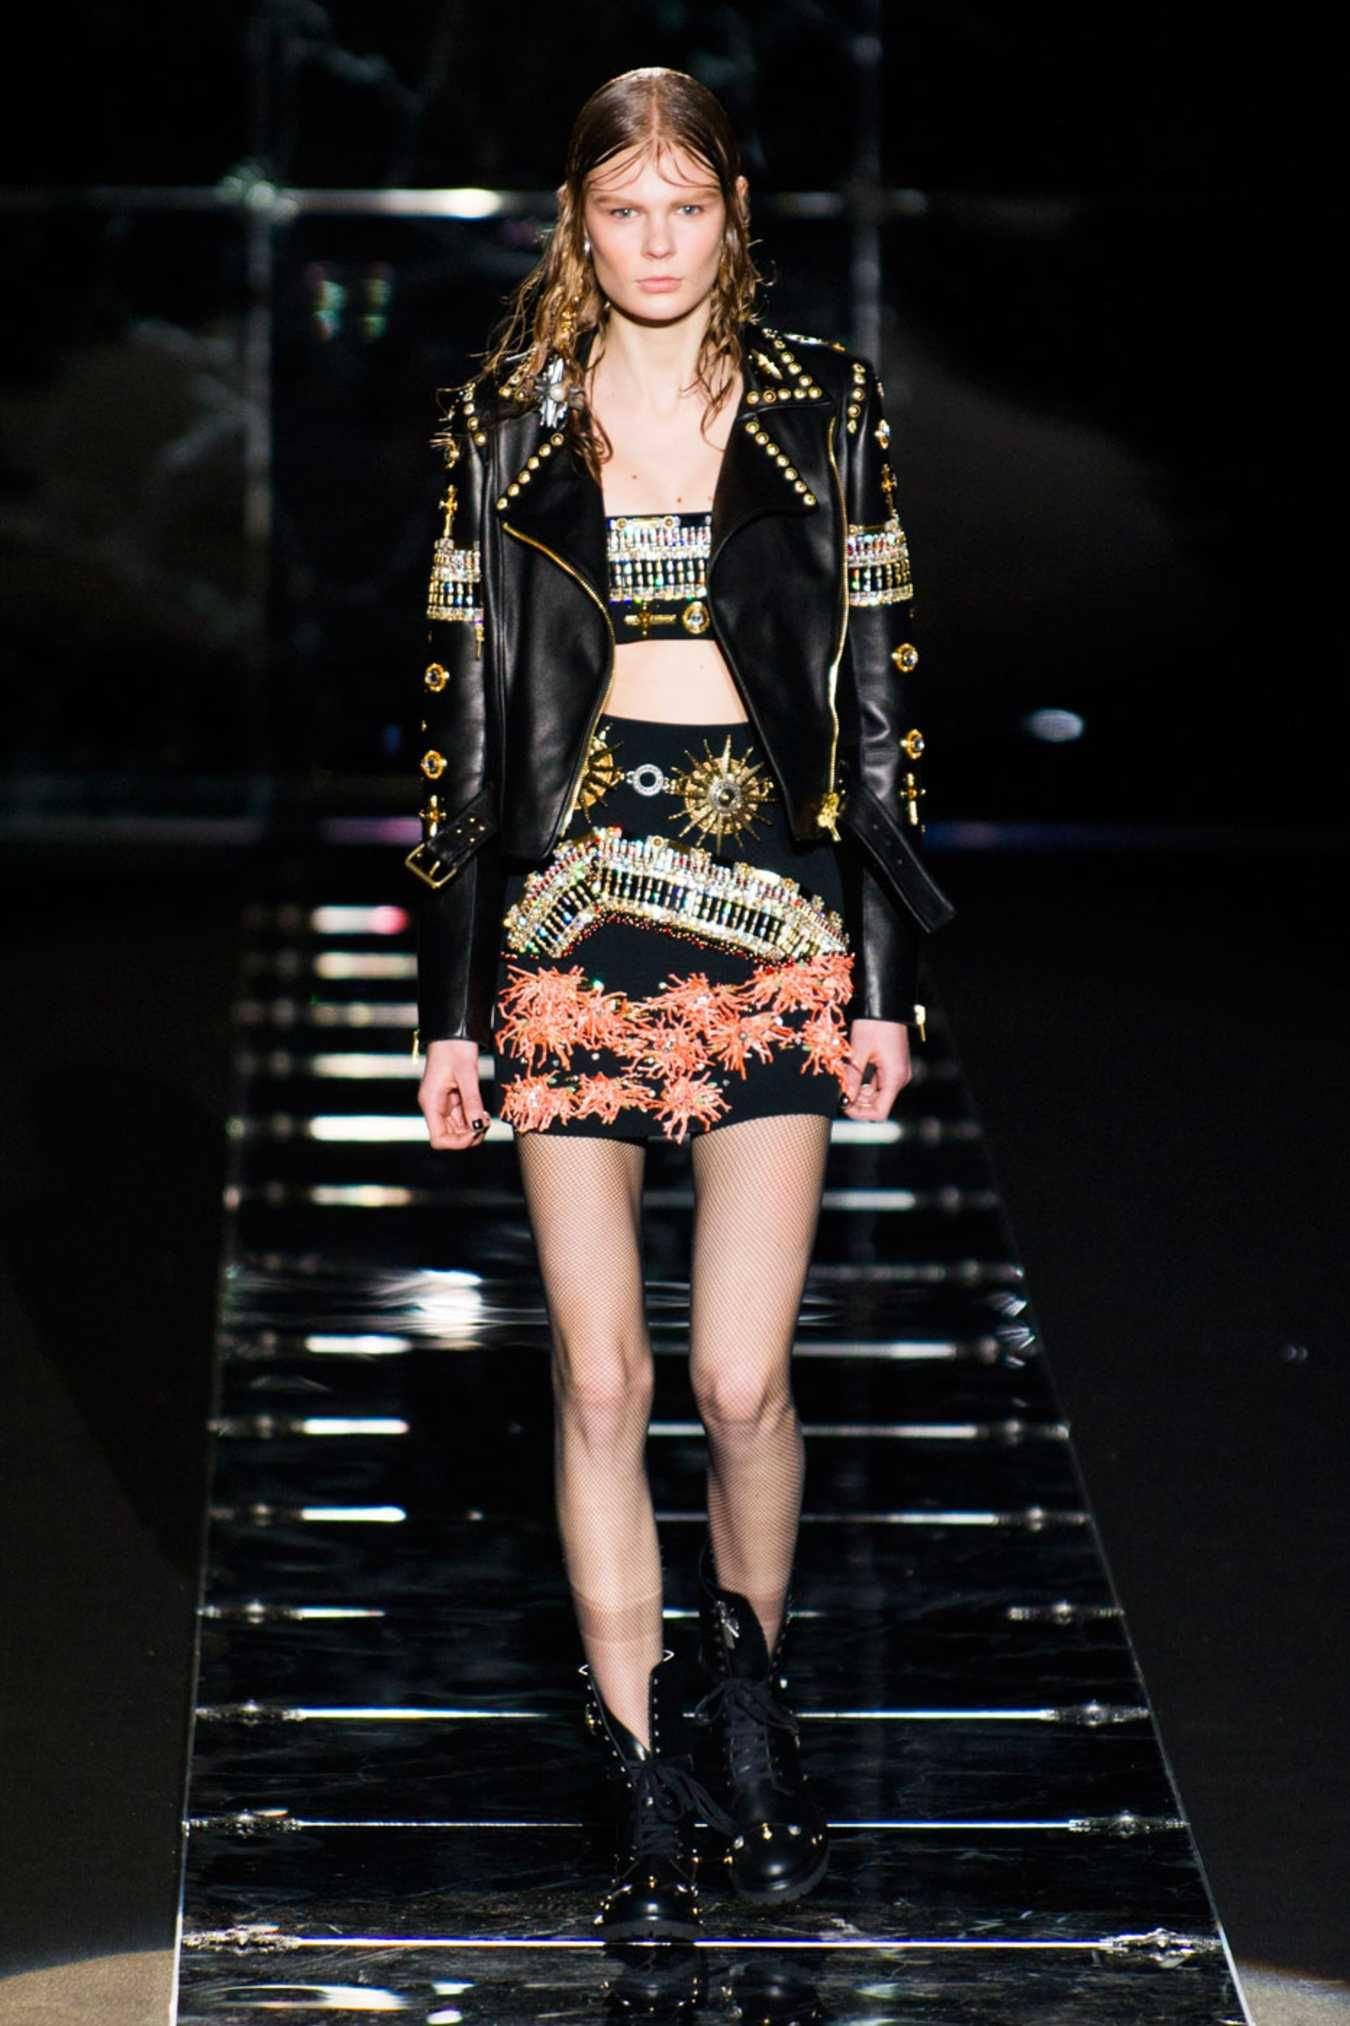 A look from Fausto Puglisi's fall 2015 collection. Photo: Imaxtree.